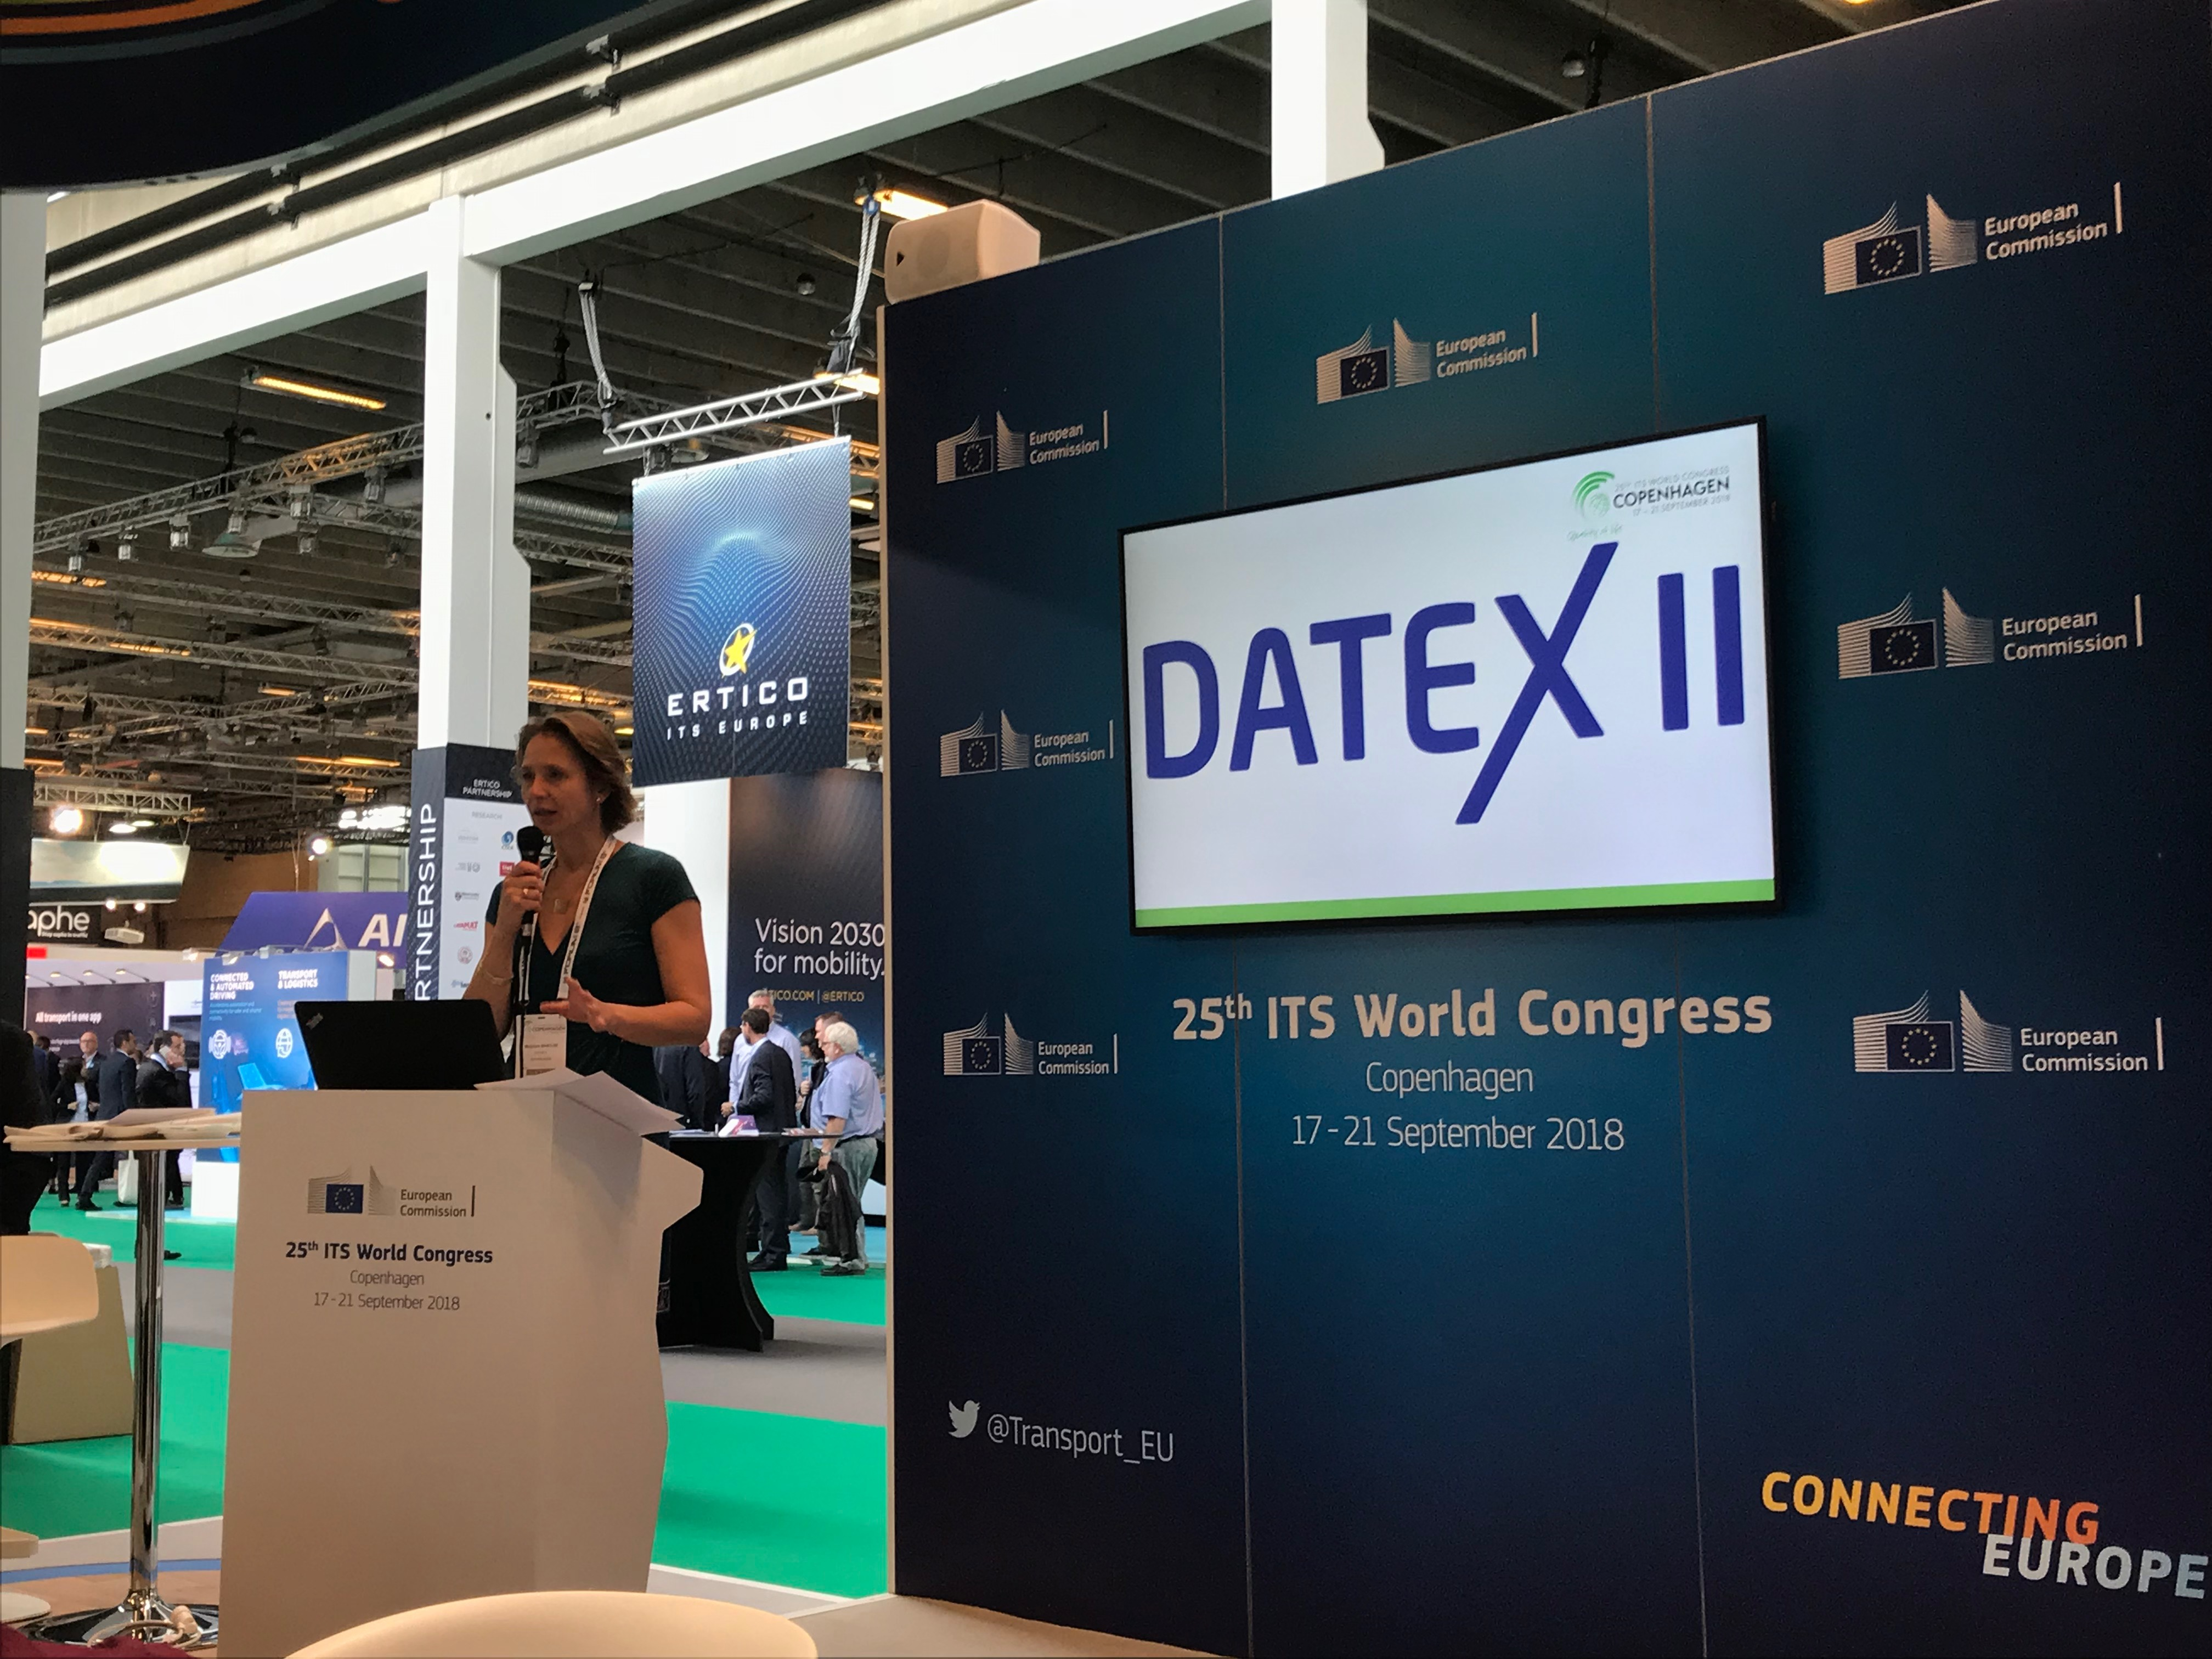 DATEX II at ITS World Congress